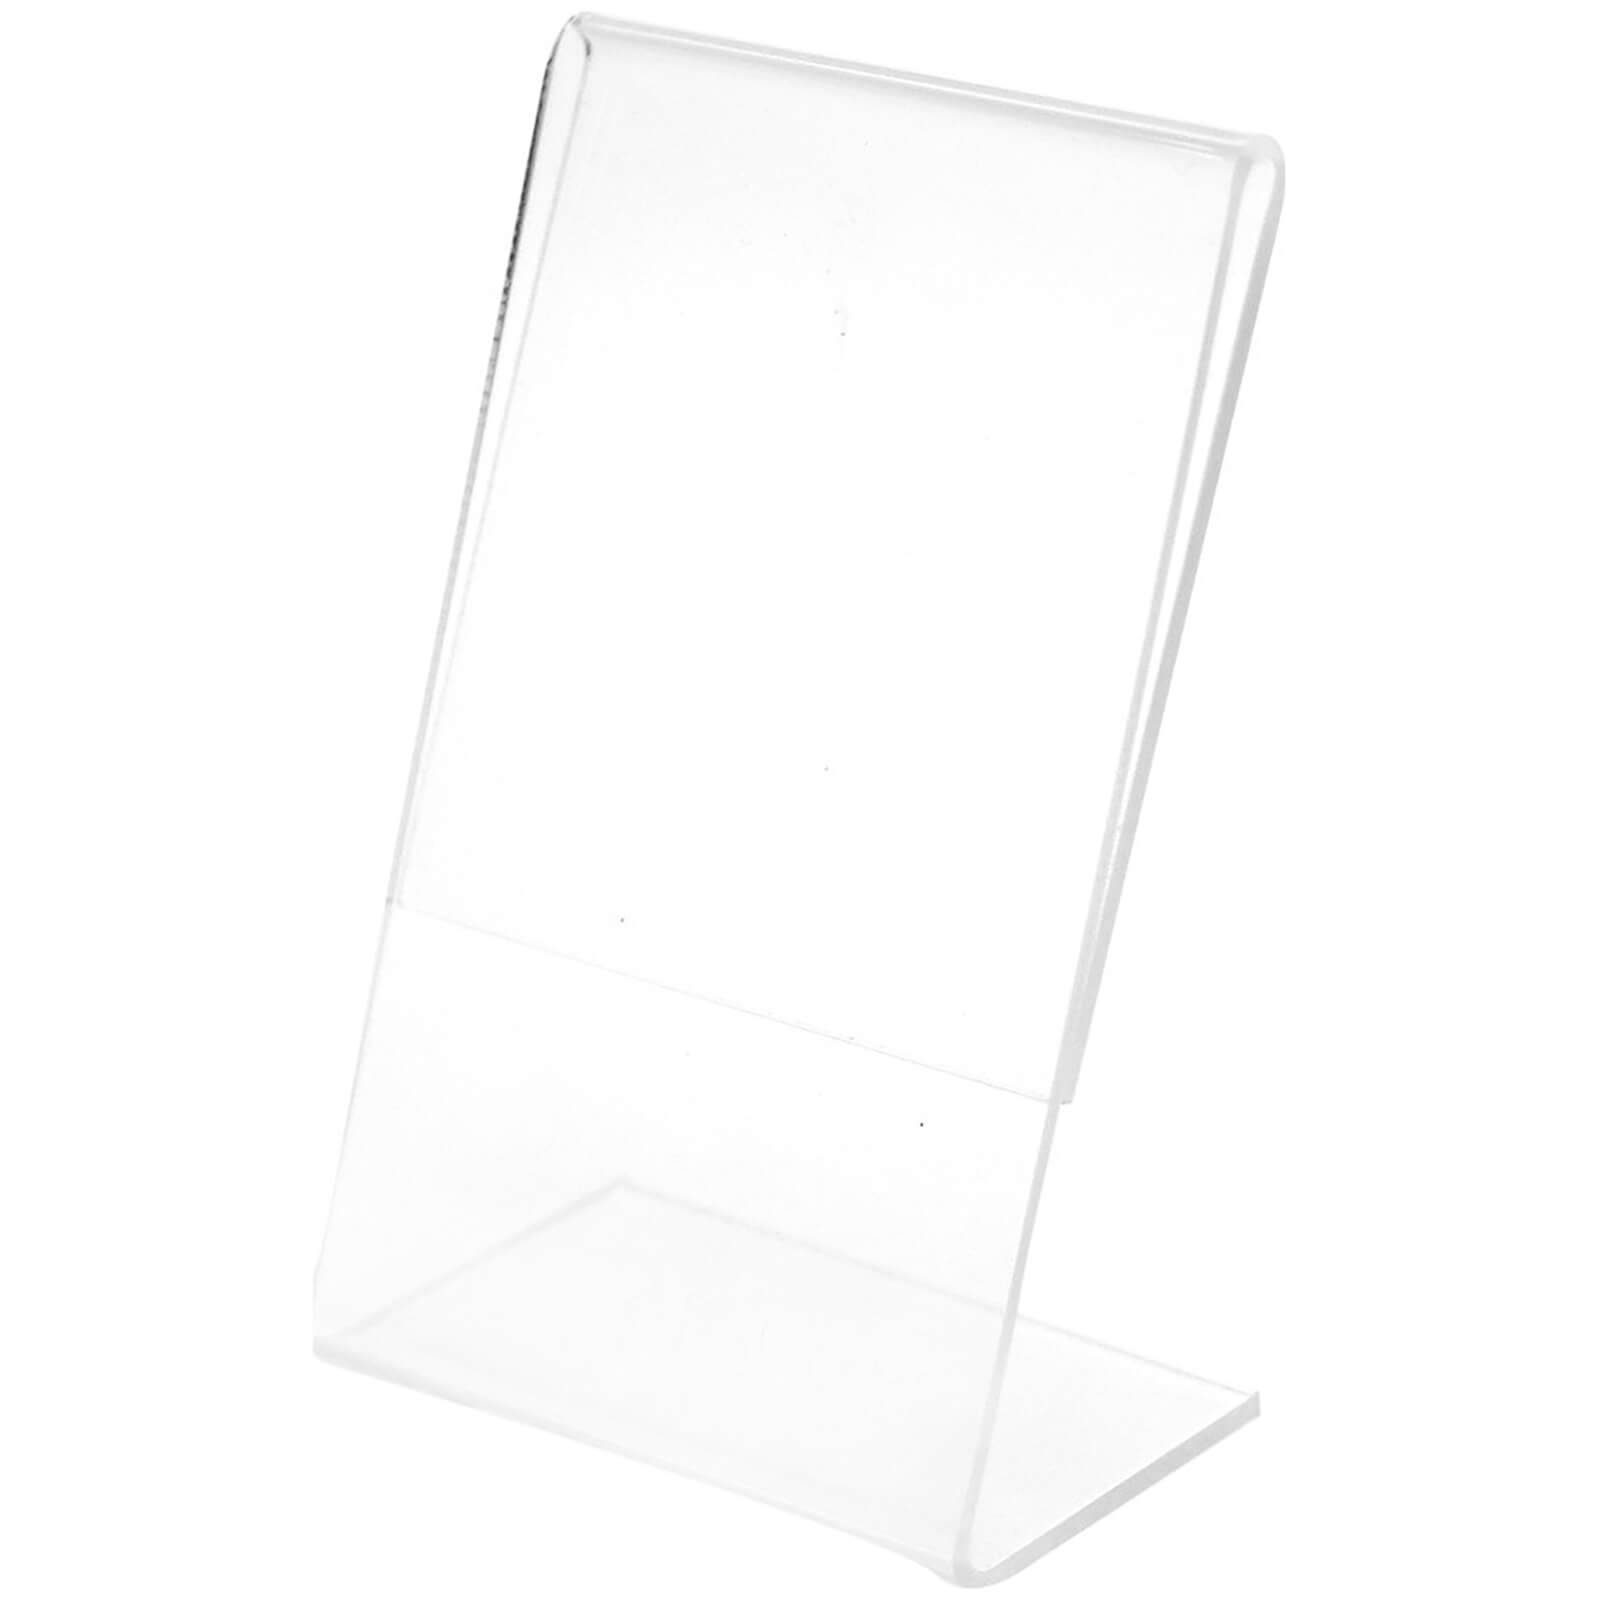 Polaroid Clear L Shaped Acrylic Frame (For 2x3 Inch Film/Paper)